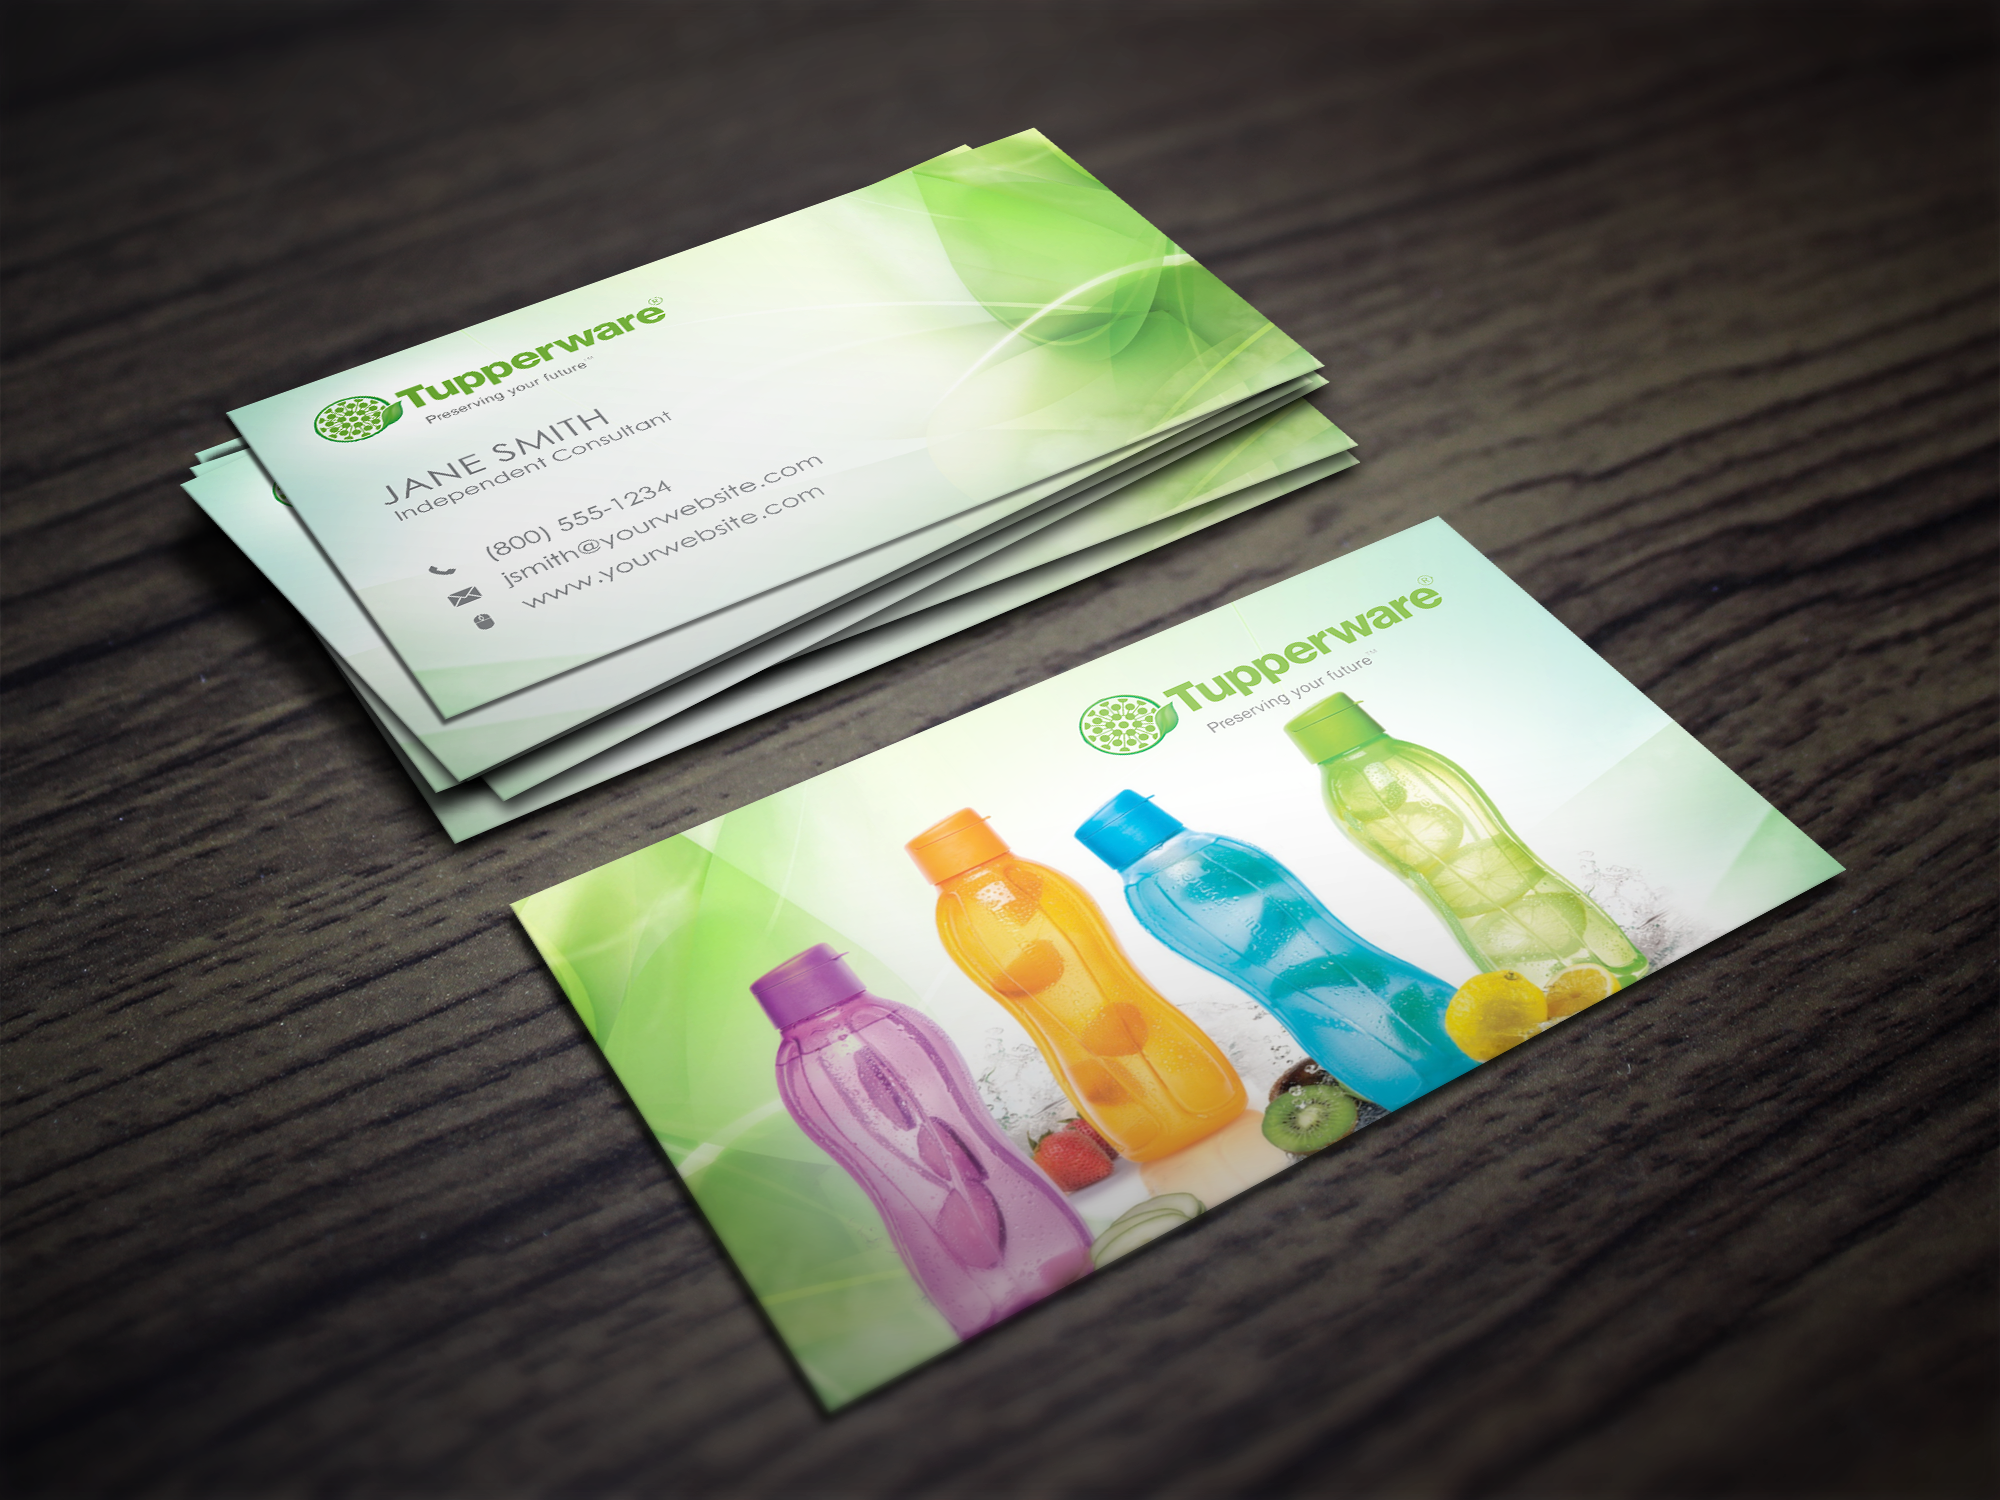 Tupperware business cards business cards and business tupperware business cards free shipping colourmoves